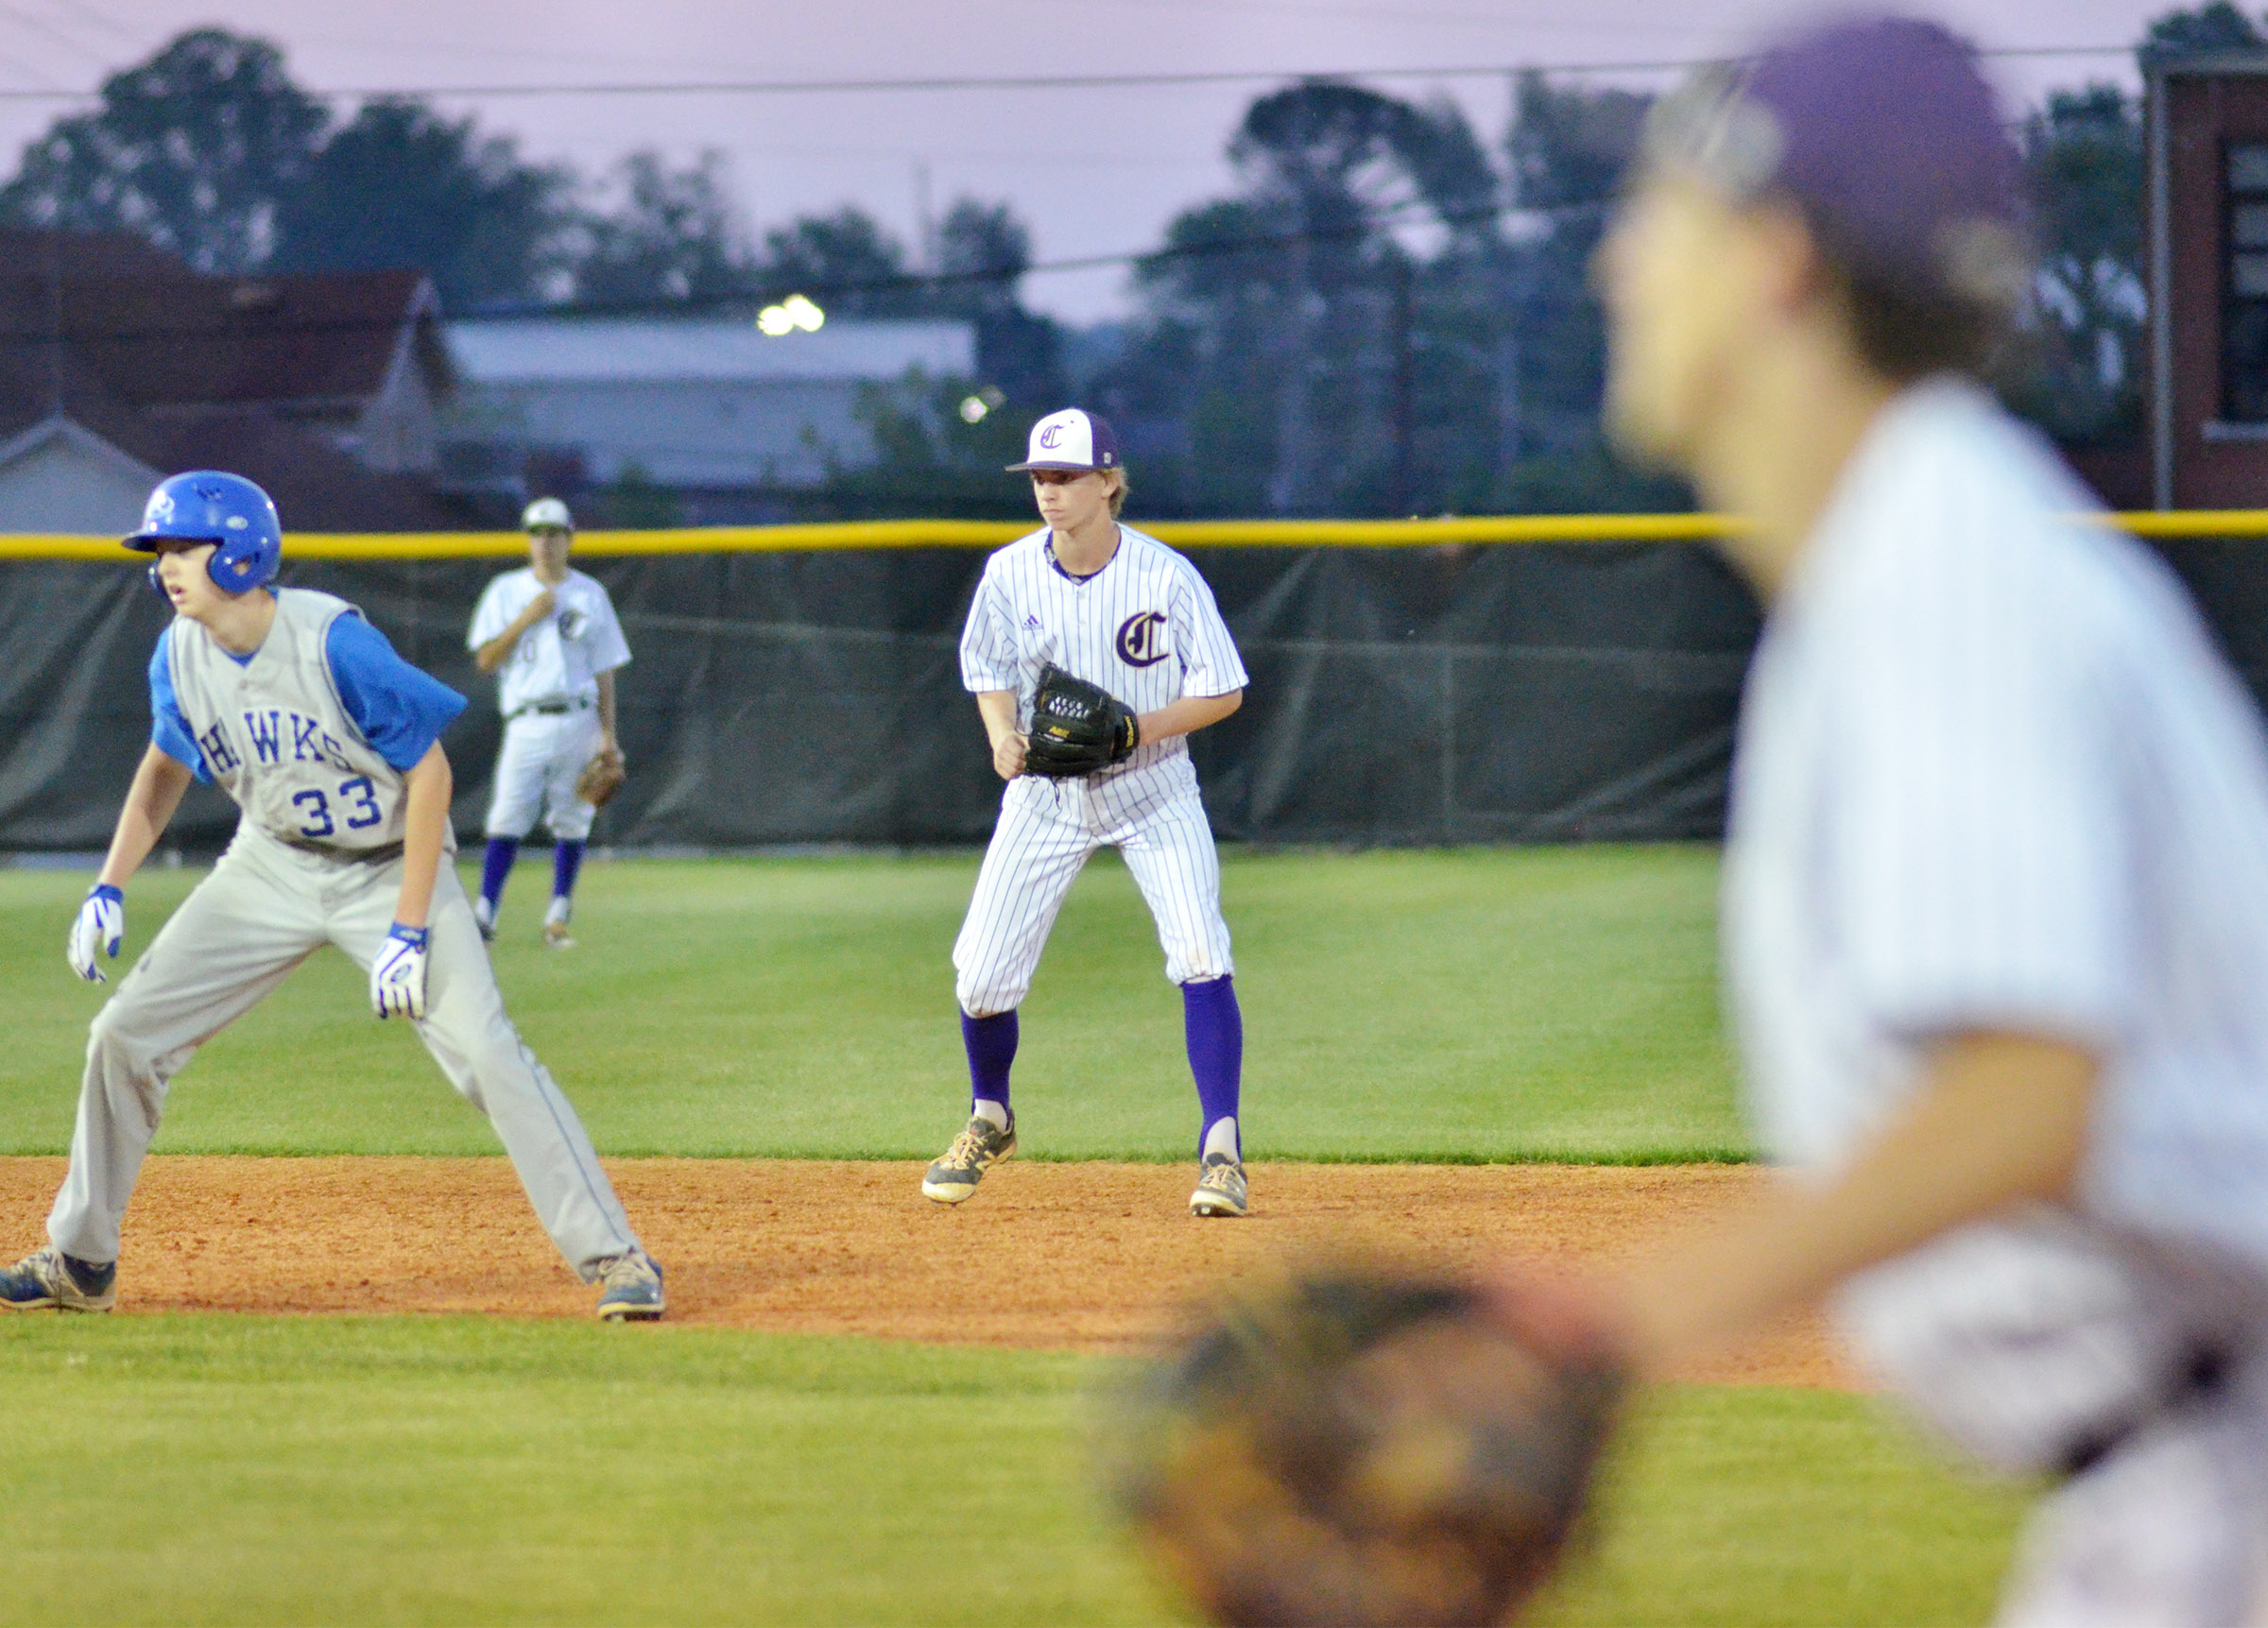 Campbellsville Middle School eighth-grader Arren Hash keeps the runner close at second.